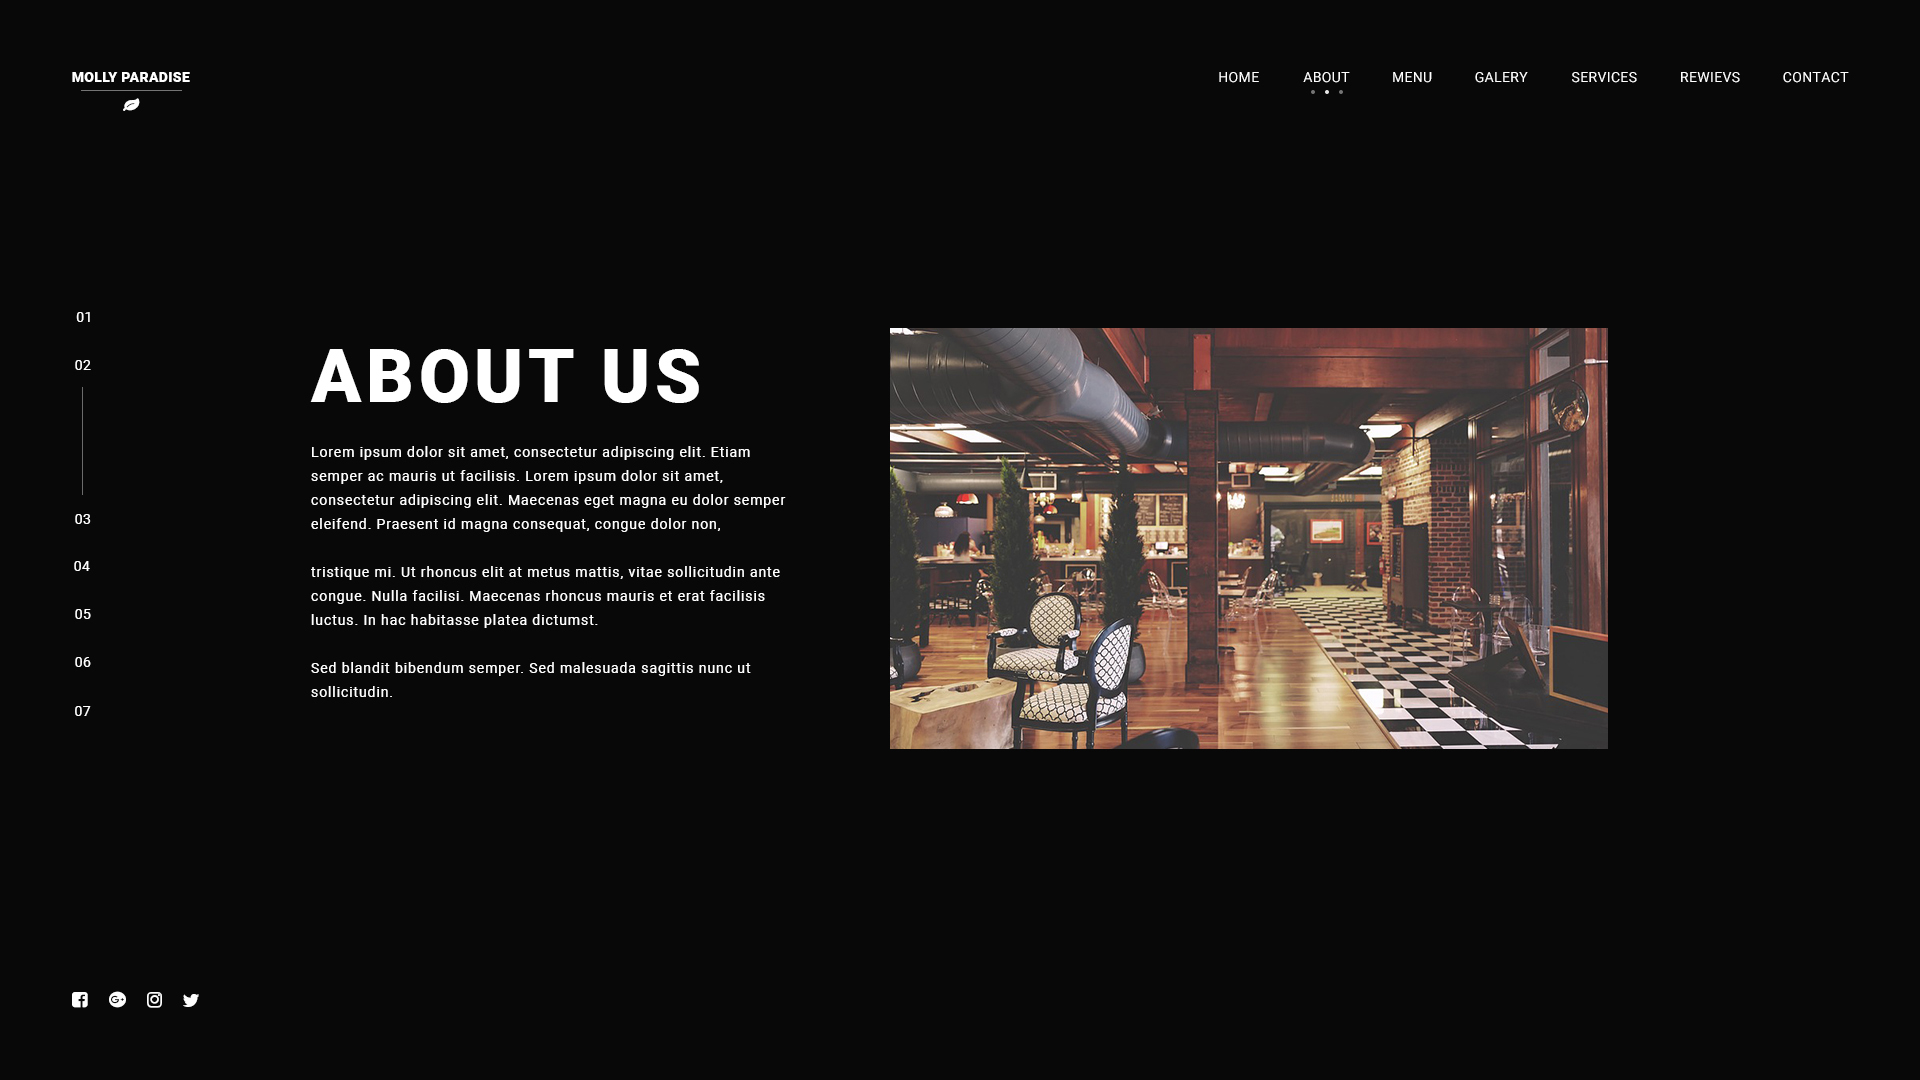 luxury simple restaurant parallax full screen one page responsive html5css3 template design